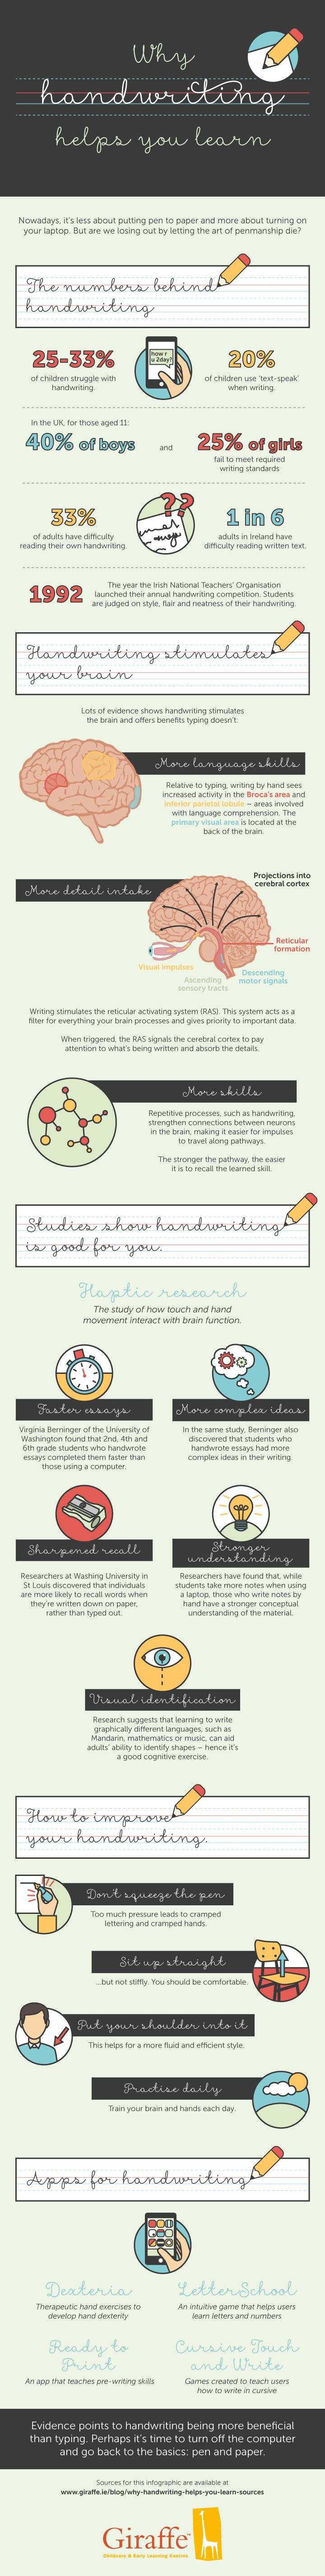 Why Handwriting Helps You Learn | MothersCircle.net